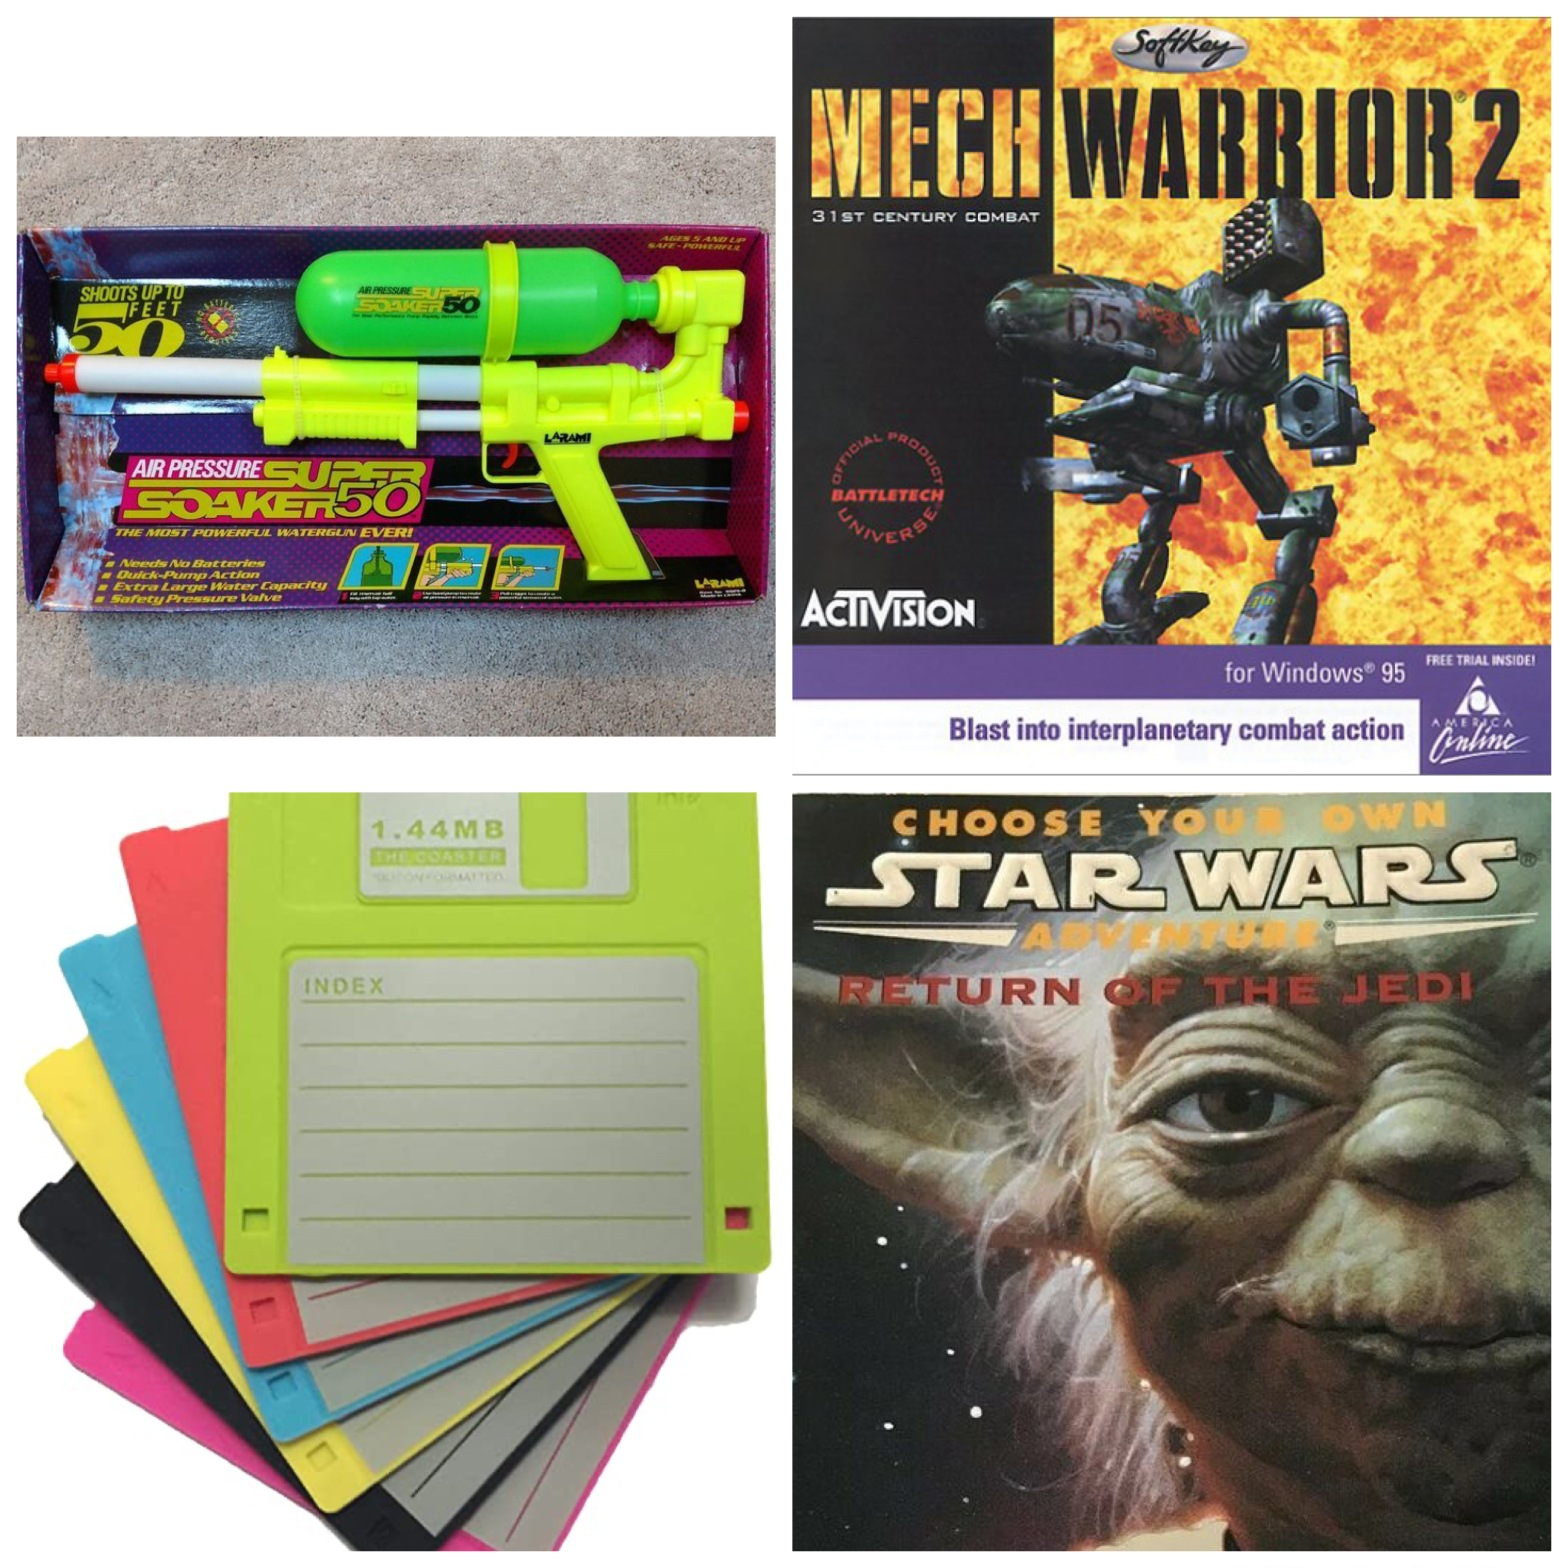 A Super Soaker, CD art for MechWarrior 2, floppy disks, and Return Of The Jedi Choose-Your-Own-Adventure book. All this will make sense when you listen to this week's episode.